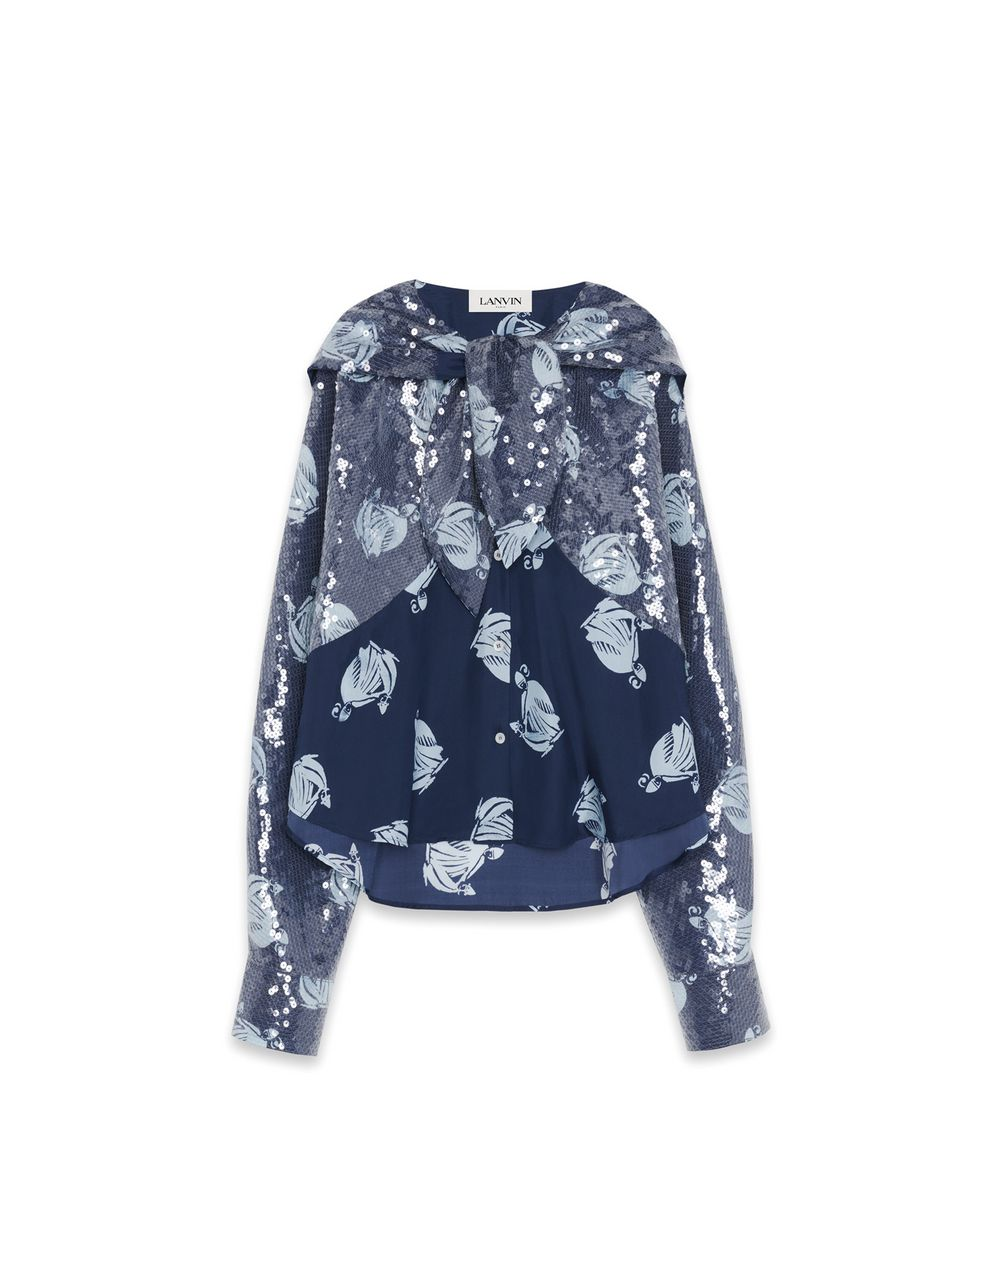 MOTHER AND CHILD LOGO SILK BLOUSE WITH SEQUINS - Lanvin